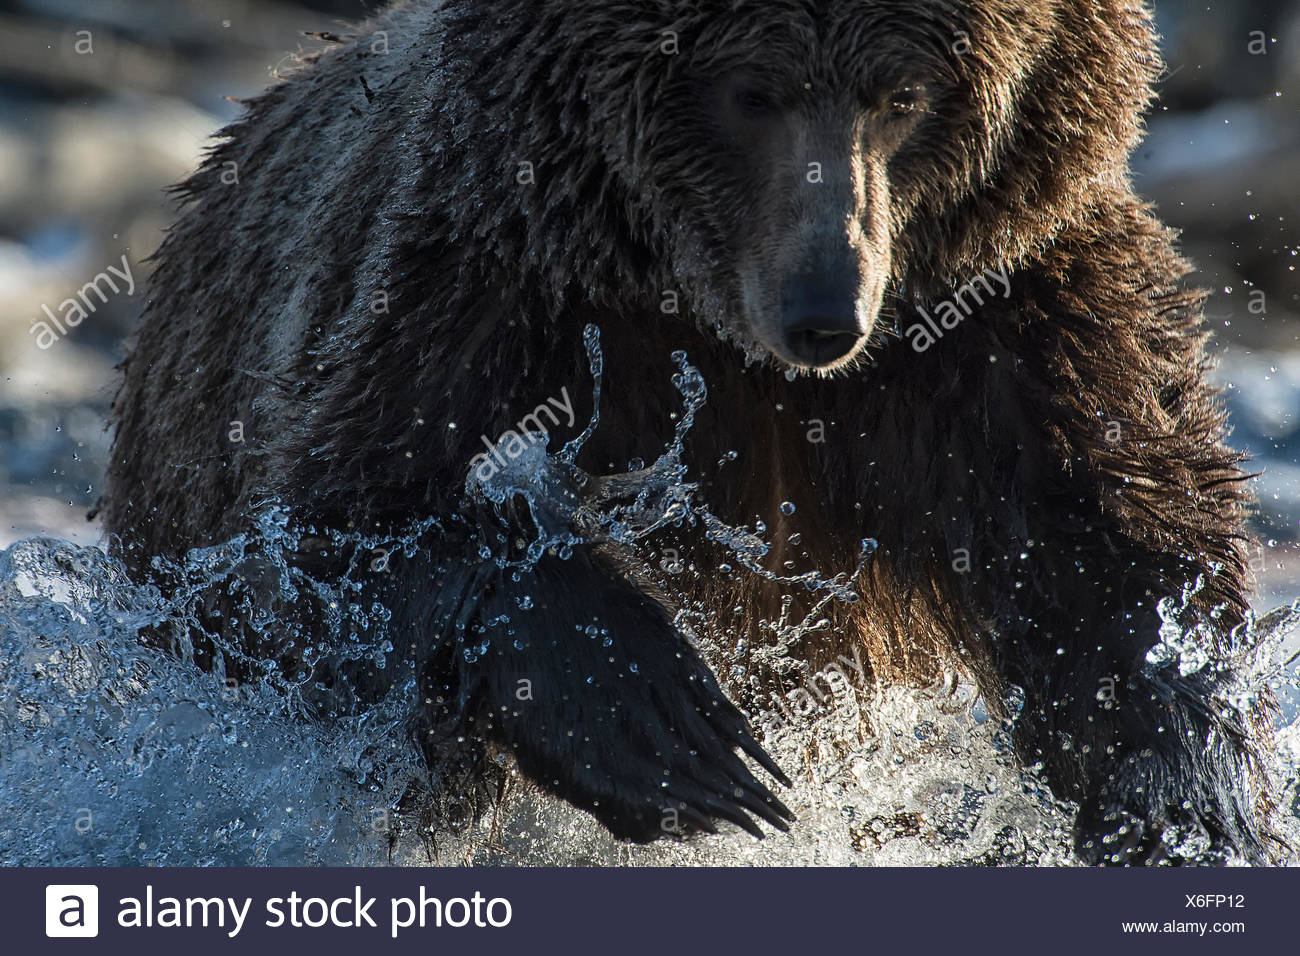 A grizzly bear hunting chum salmon in the Kluane River. - Stock Image